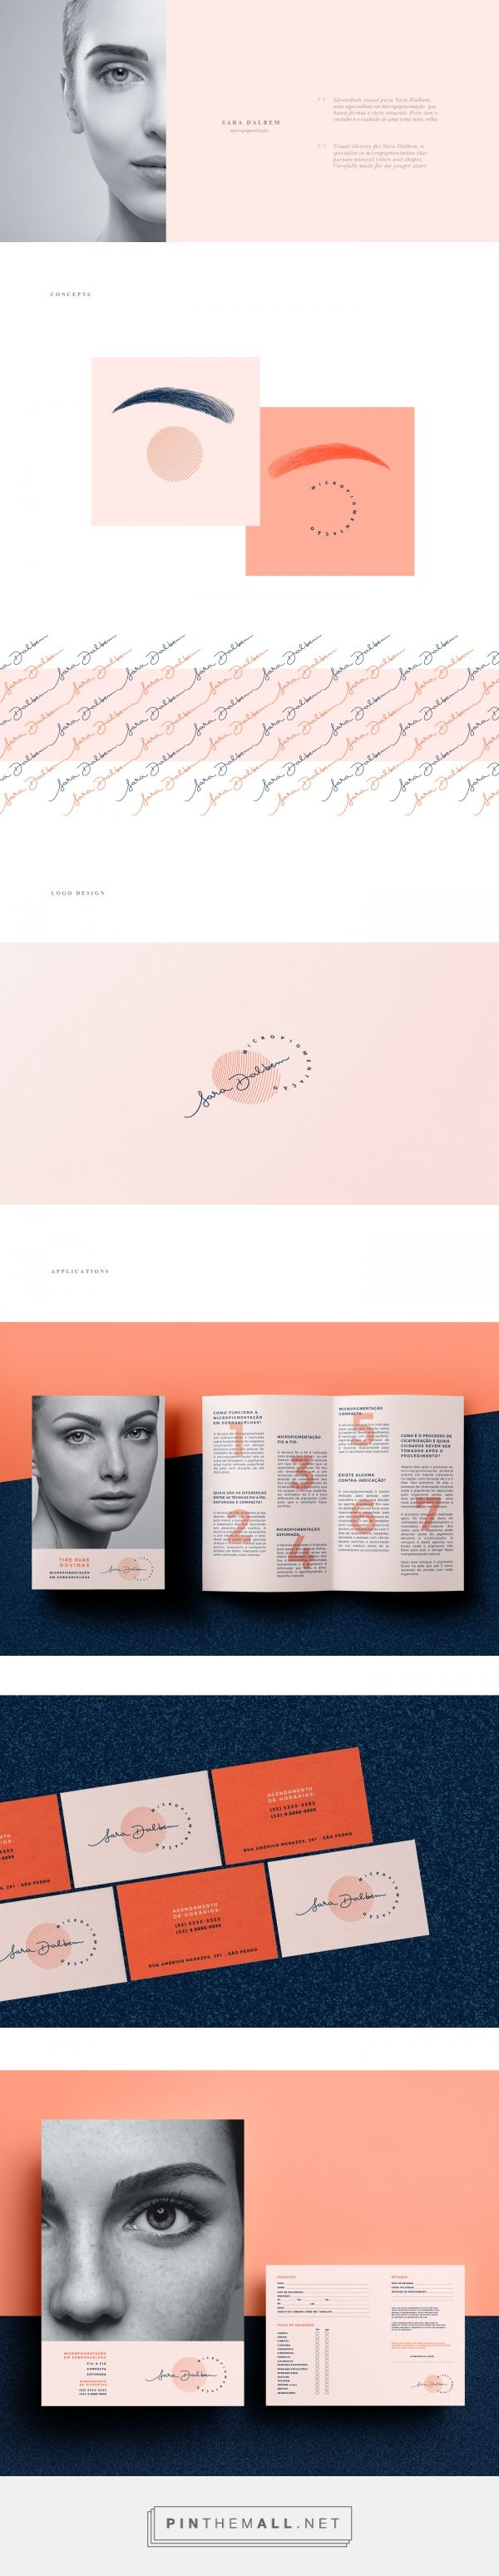 Sara Dalbem Micropigmentation Specialist Branding by Natalia Dalbem | Fivestar Branding Agency – Design and Branding Agency & Curated Inspiration Gallery